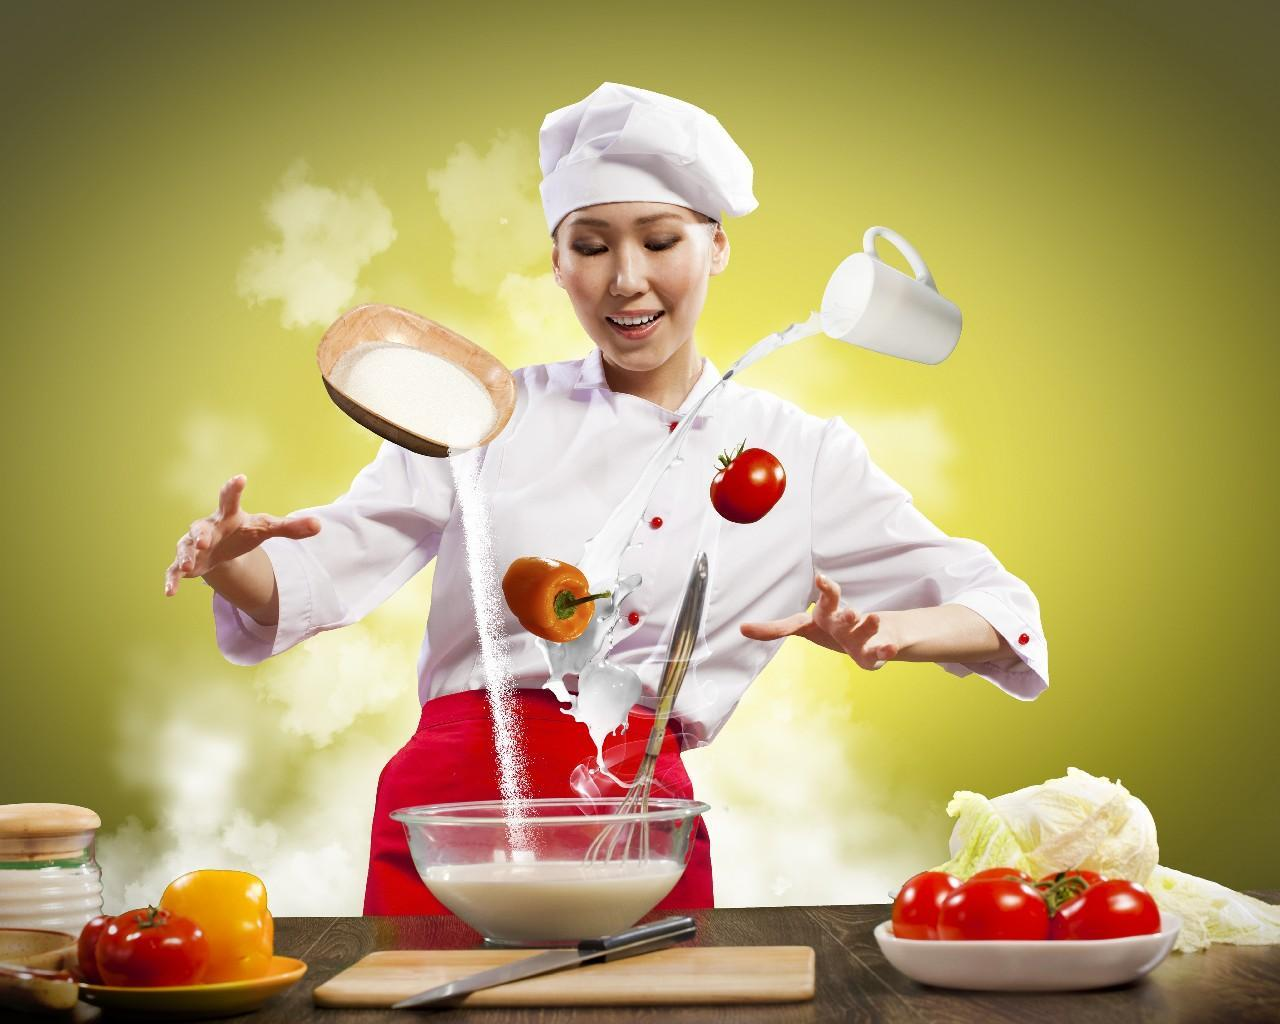 Chef Cooking Wallpapers For Android Apk Download